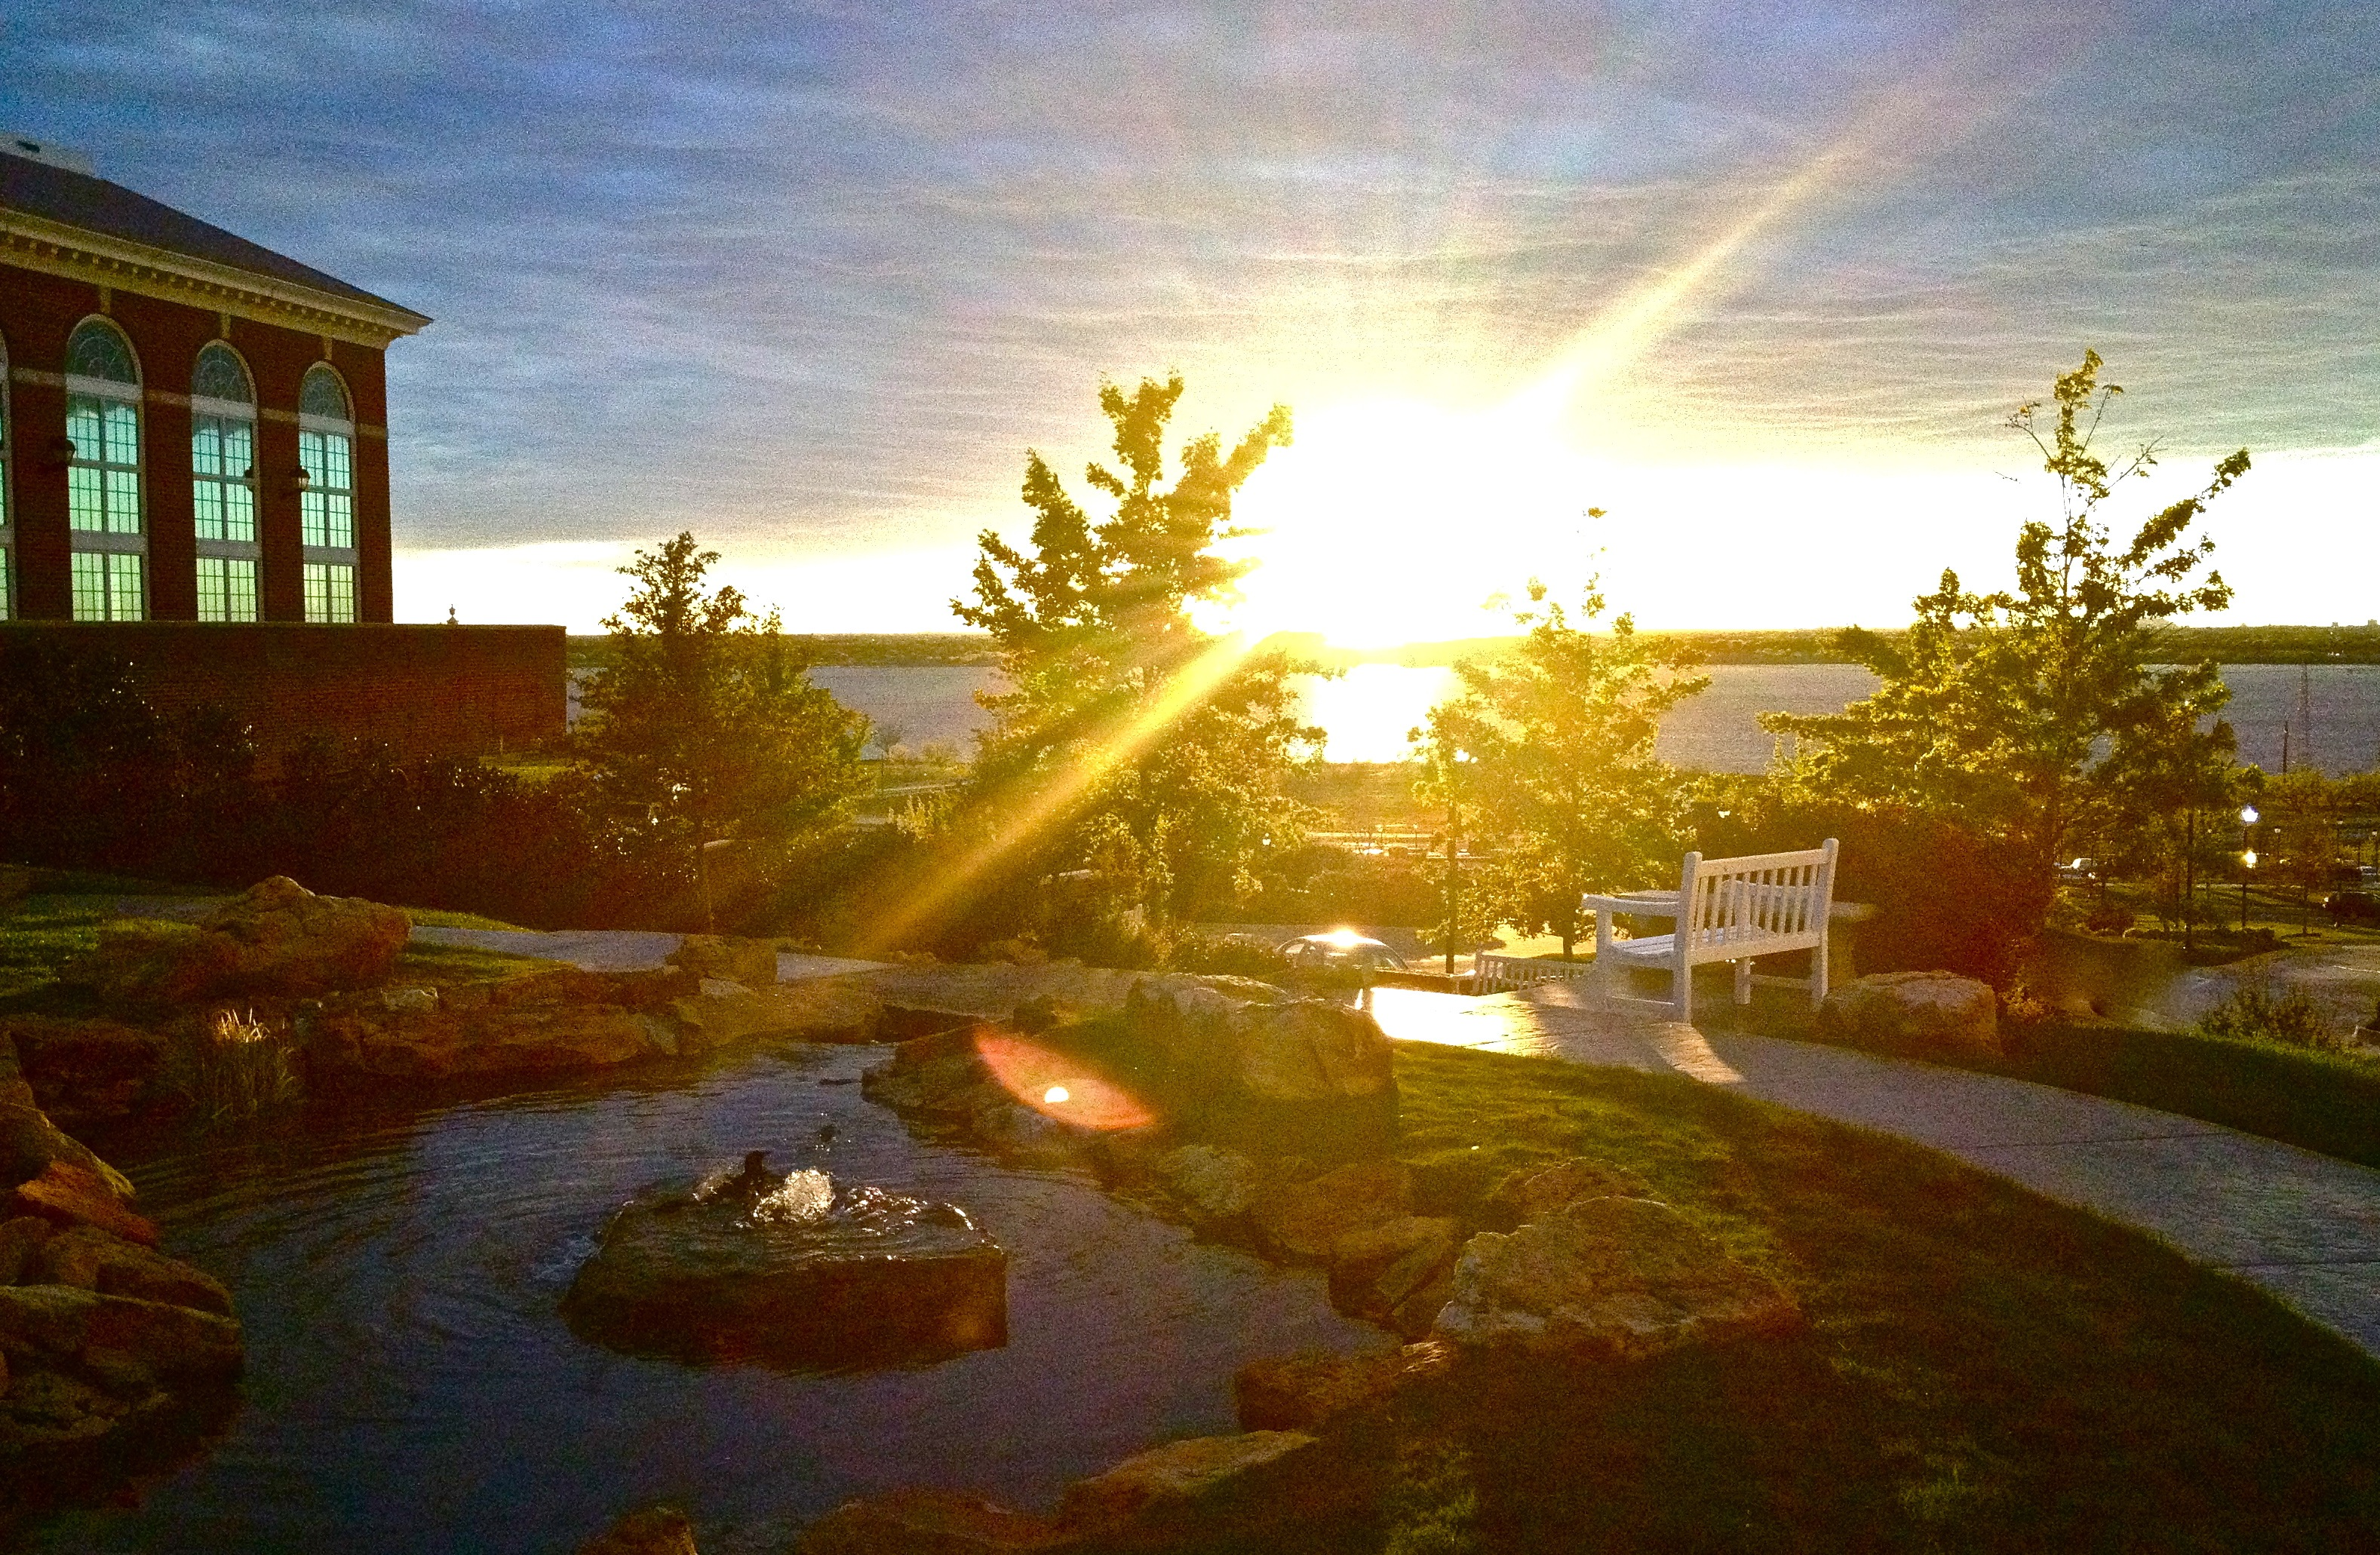 Merveilleux File:Sunset At Ellis Prayer Garden, Dallas Baptist University